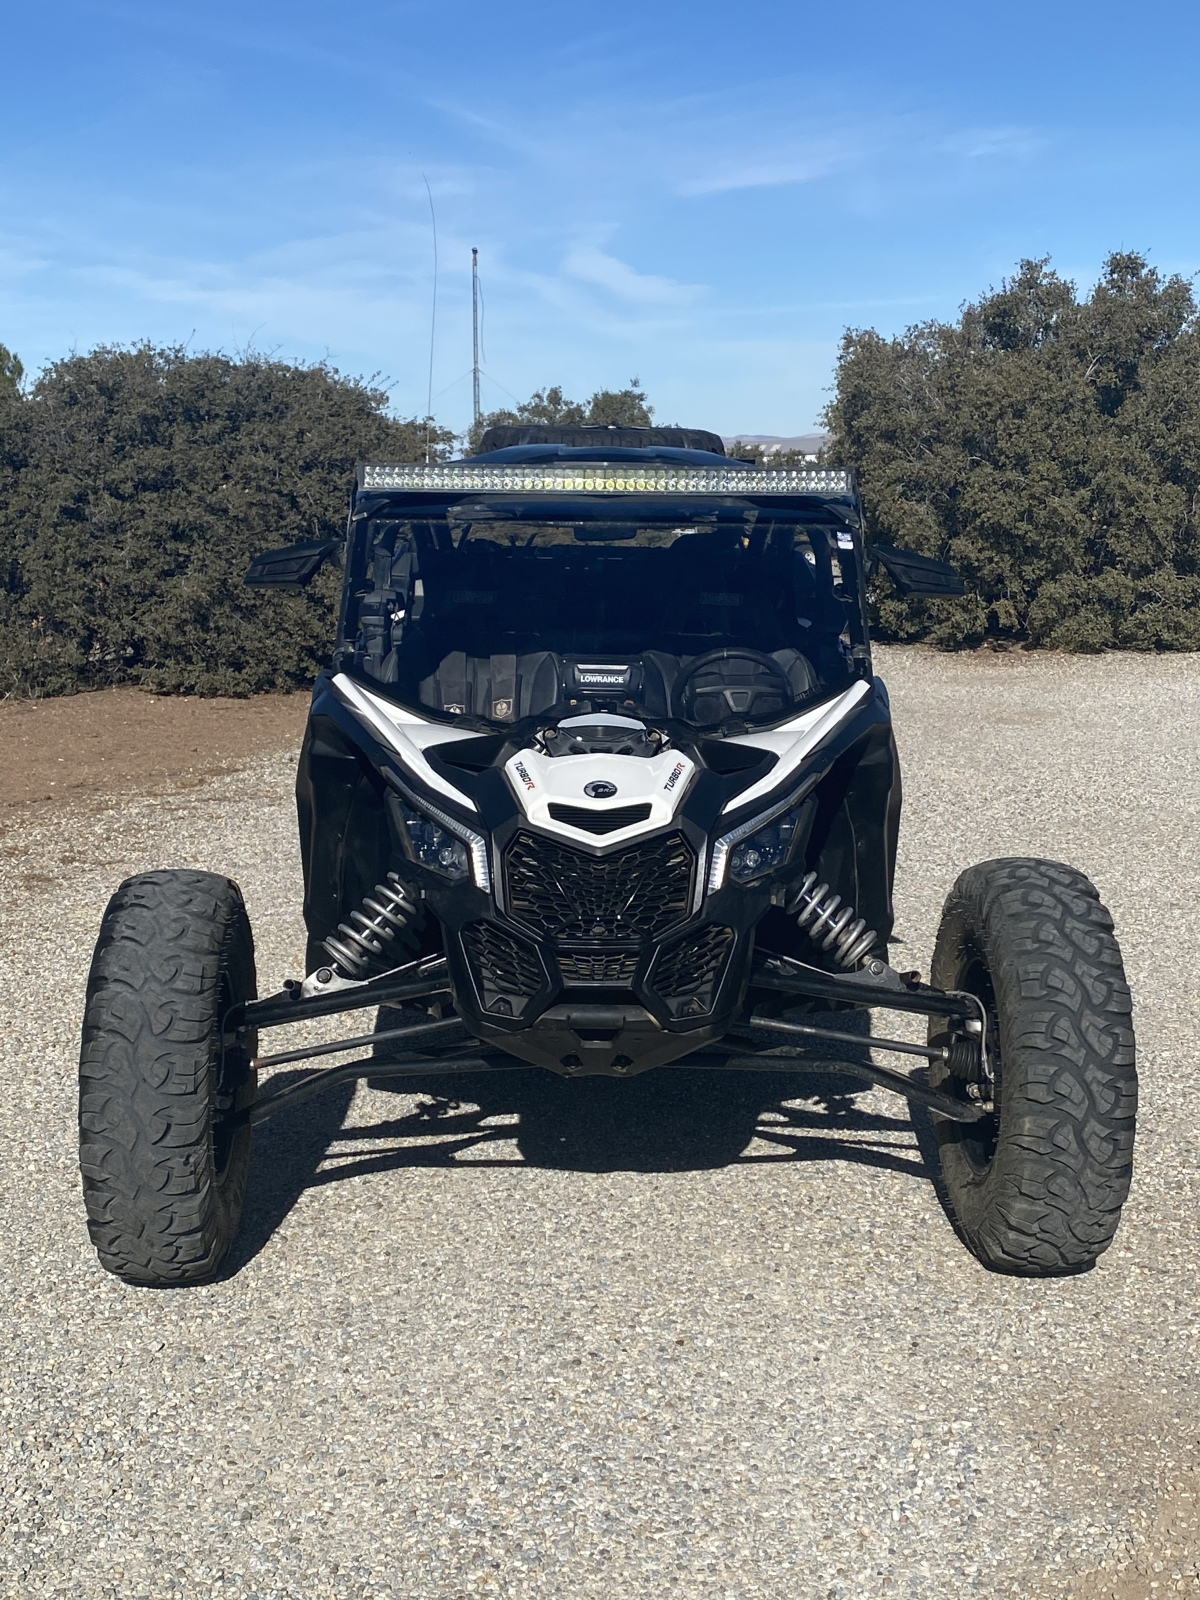 For Sale: Canam x3 with lonestar long travel kit low miles  - photo1